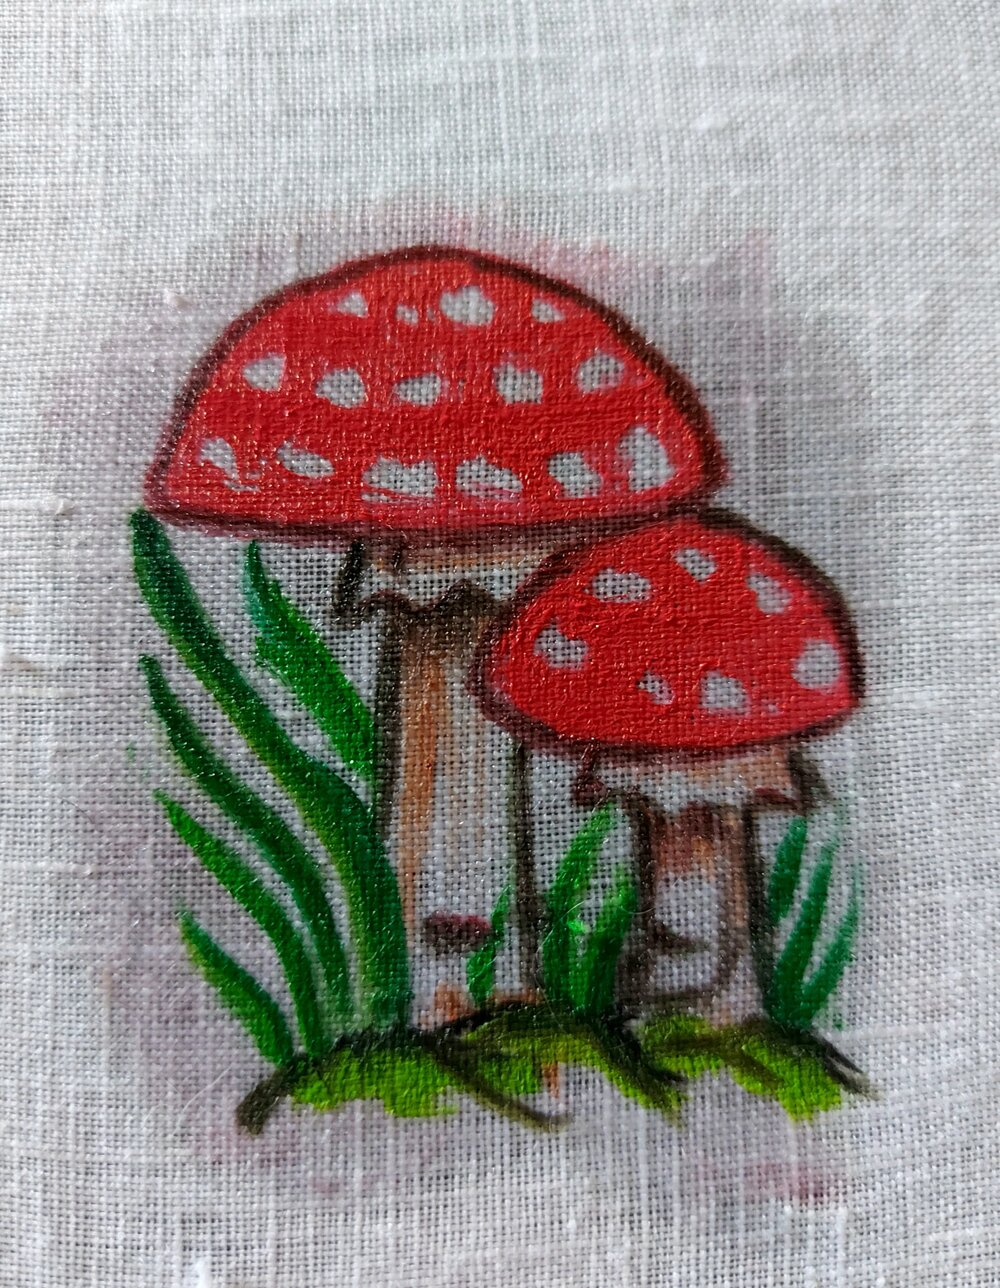 mushrooms and grass painted on white linen